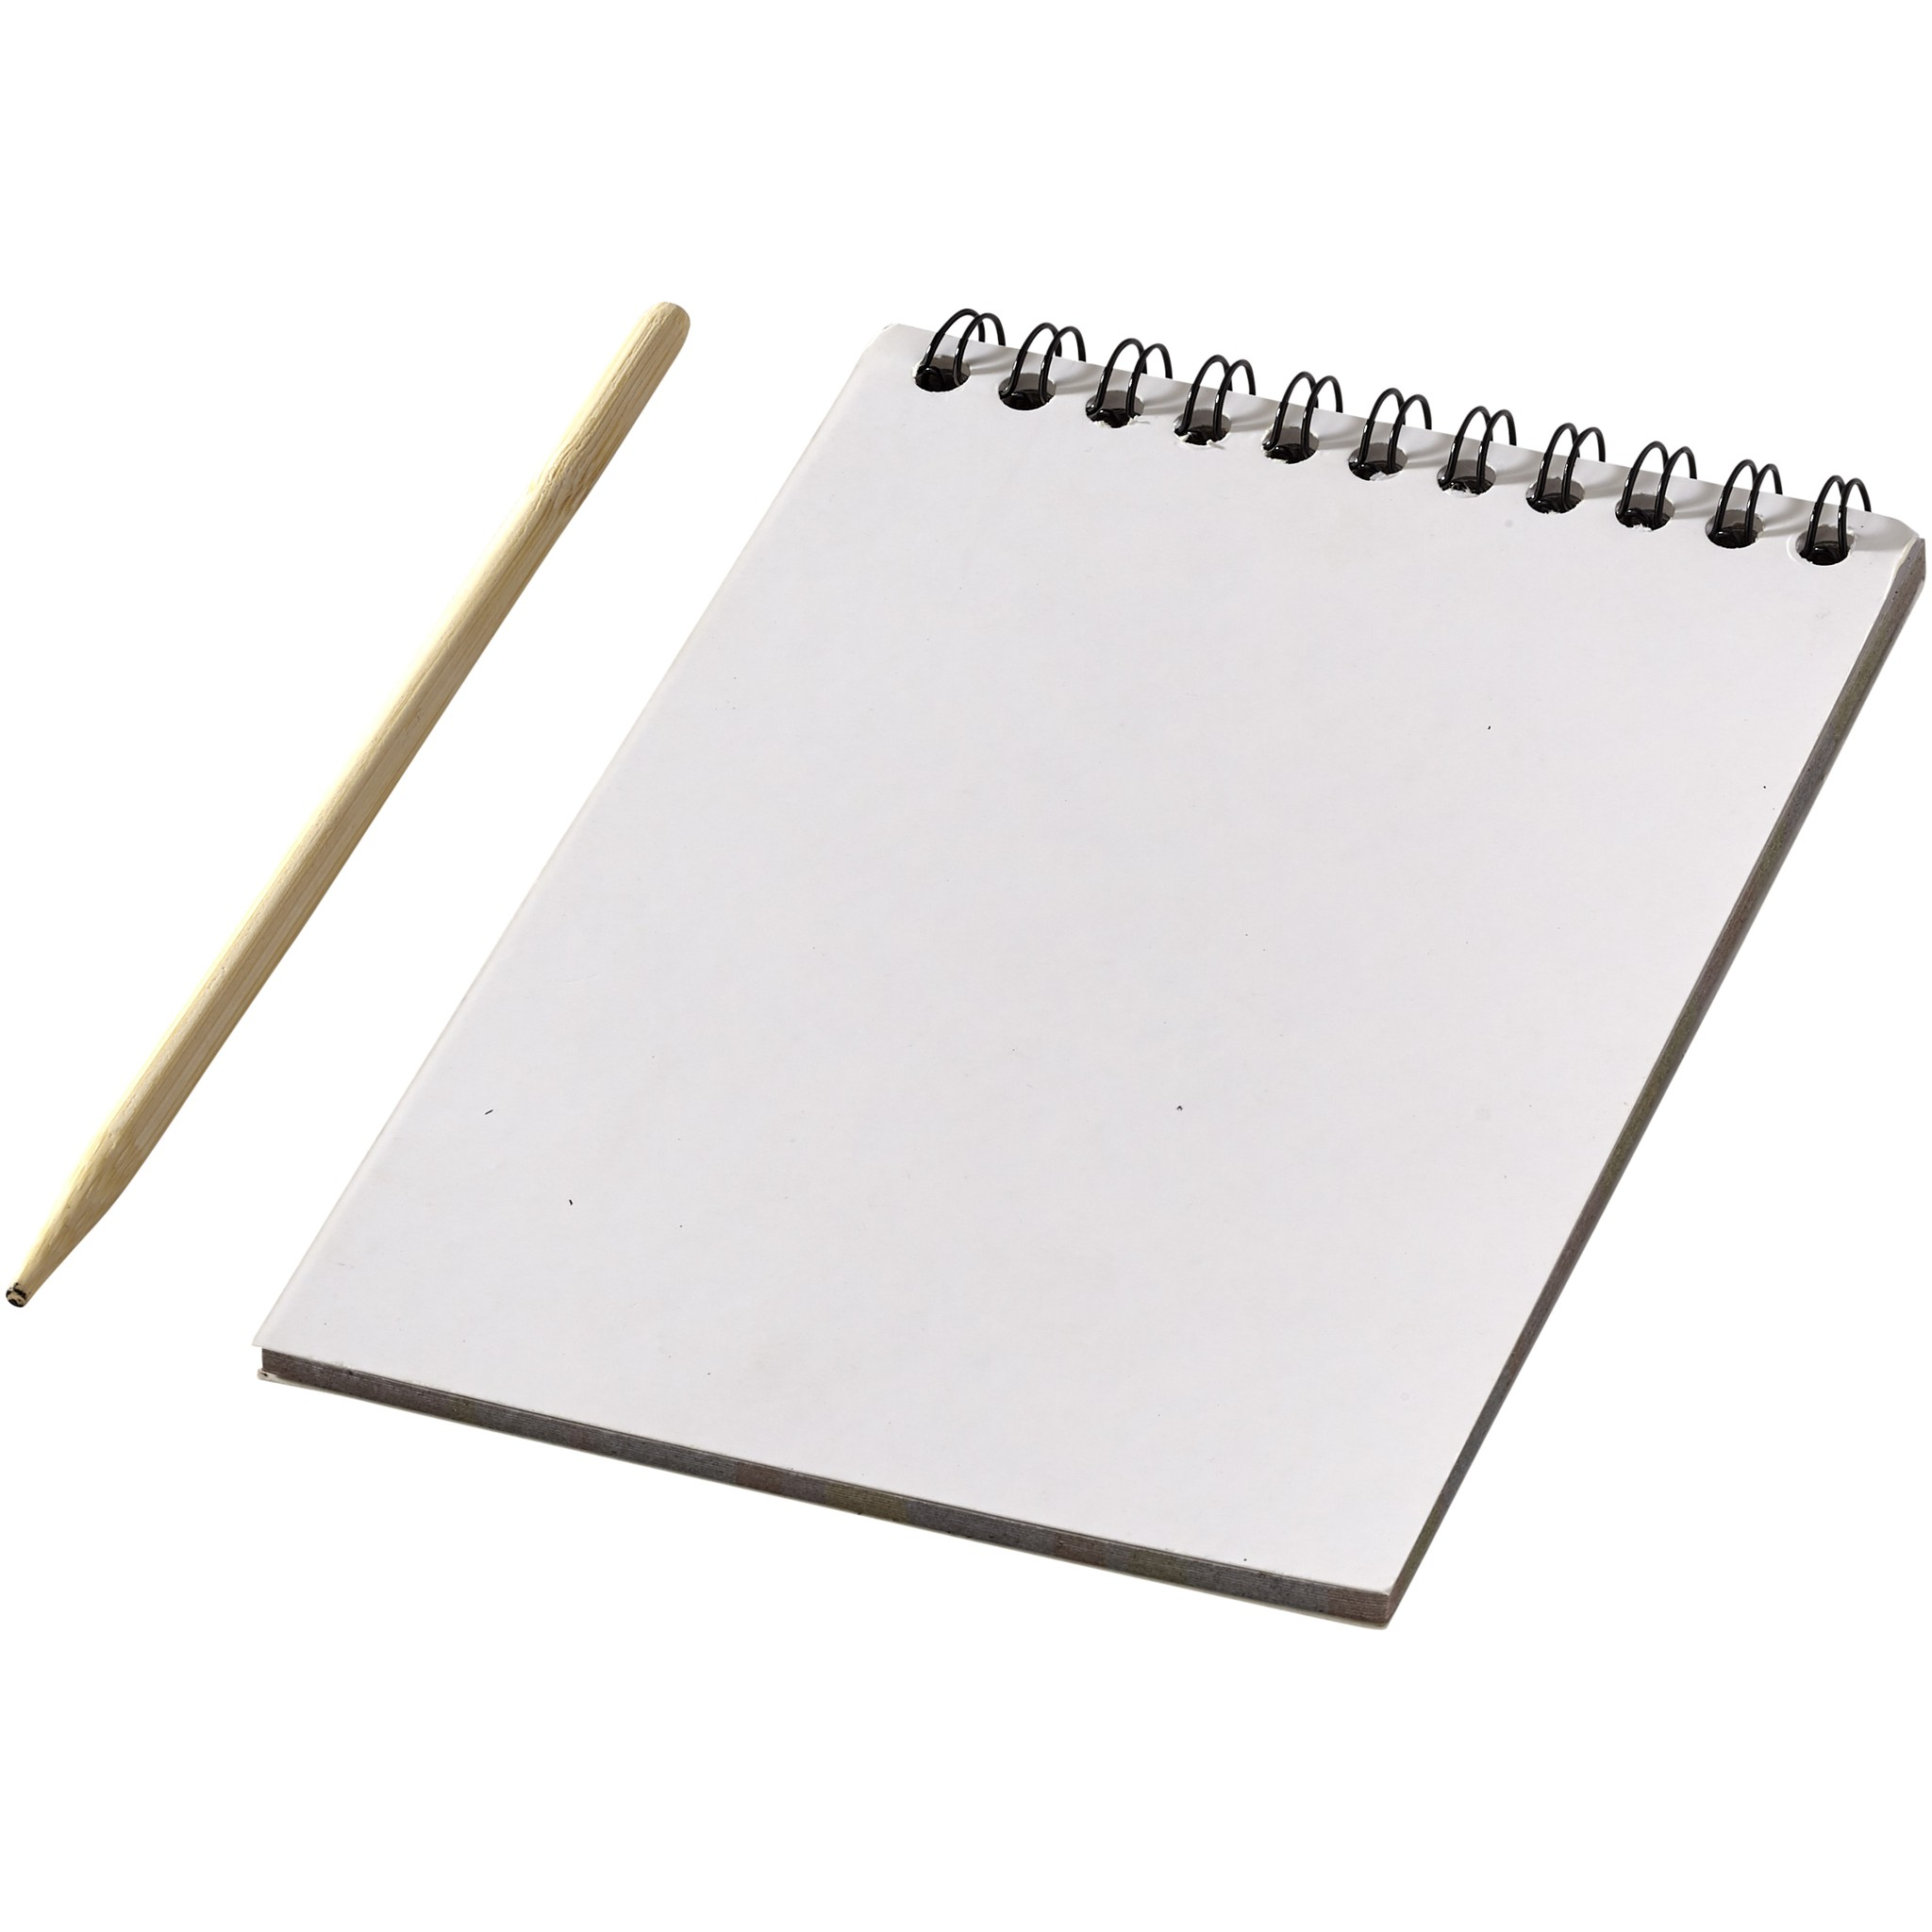 Take your writing apparatuses, scratch pad, chargers